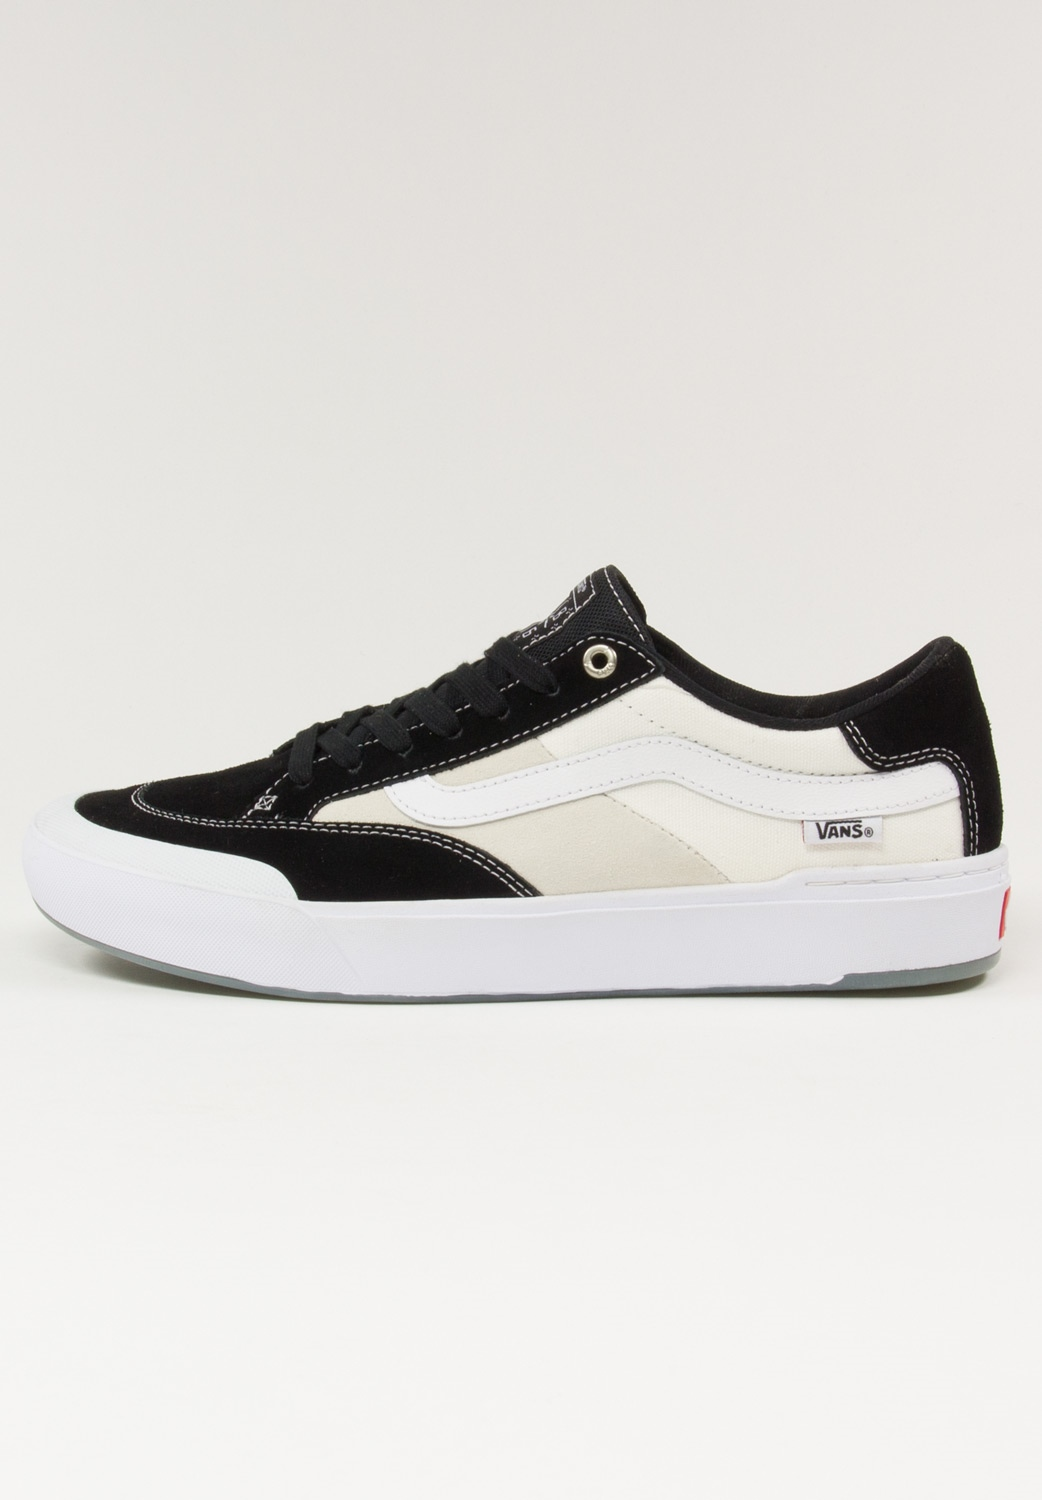 Vans Authentic Pro Shoe (Suede) Black Bonkers